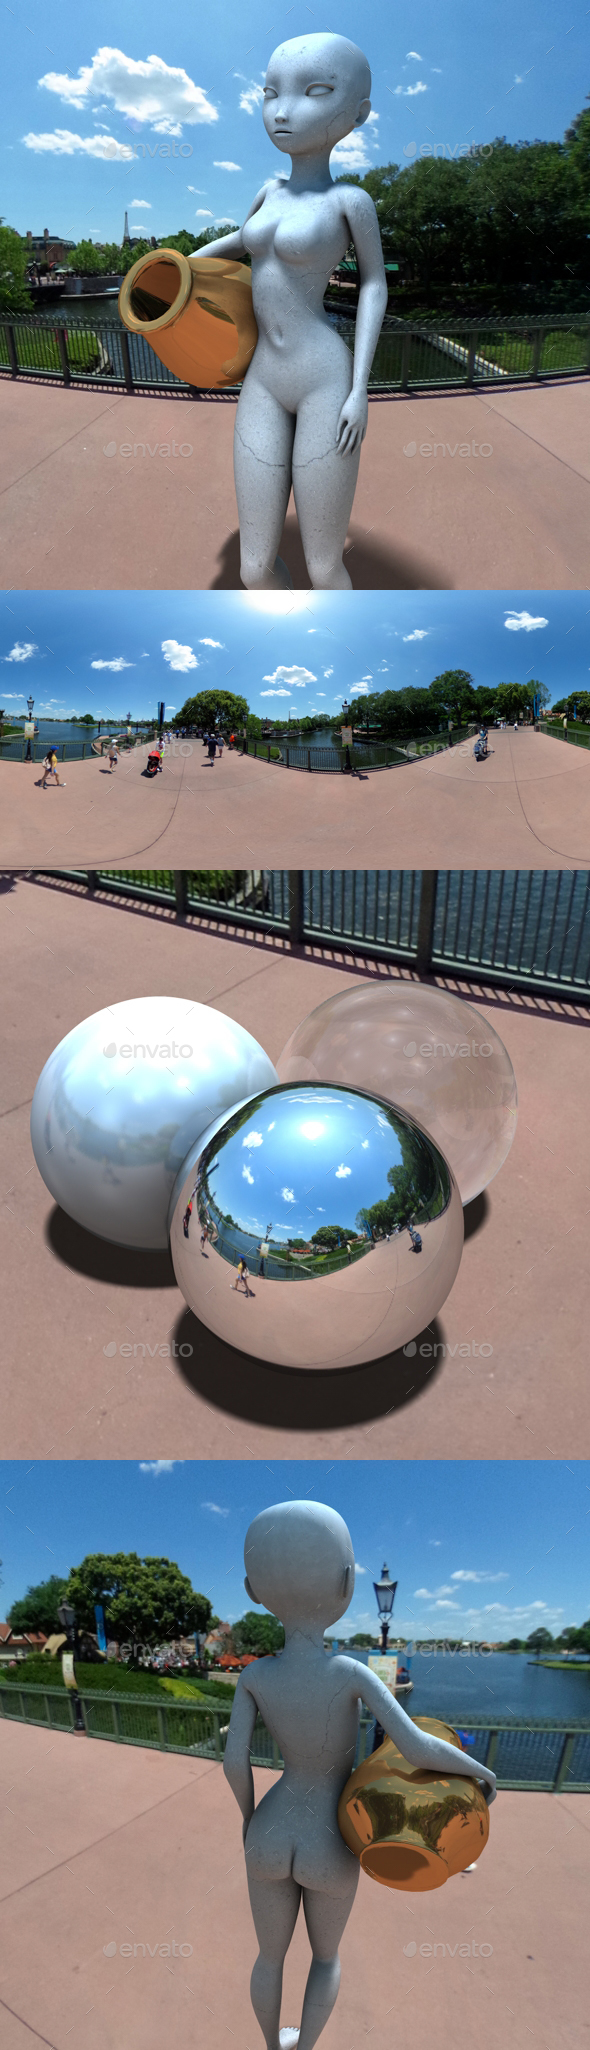 High Sun Blue Sky HDRI - 3DOcean Item for Sale